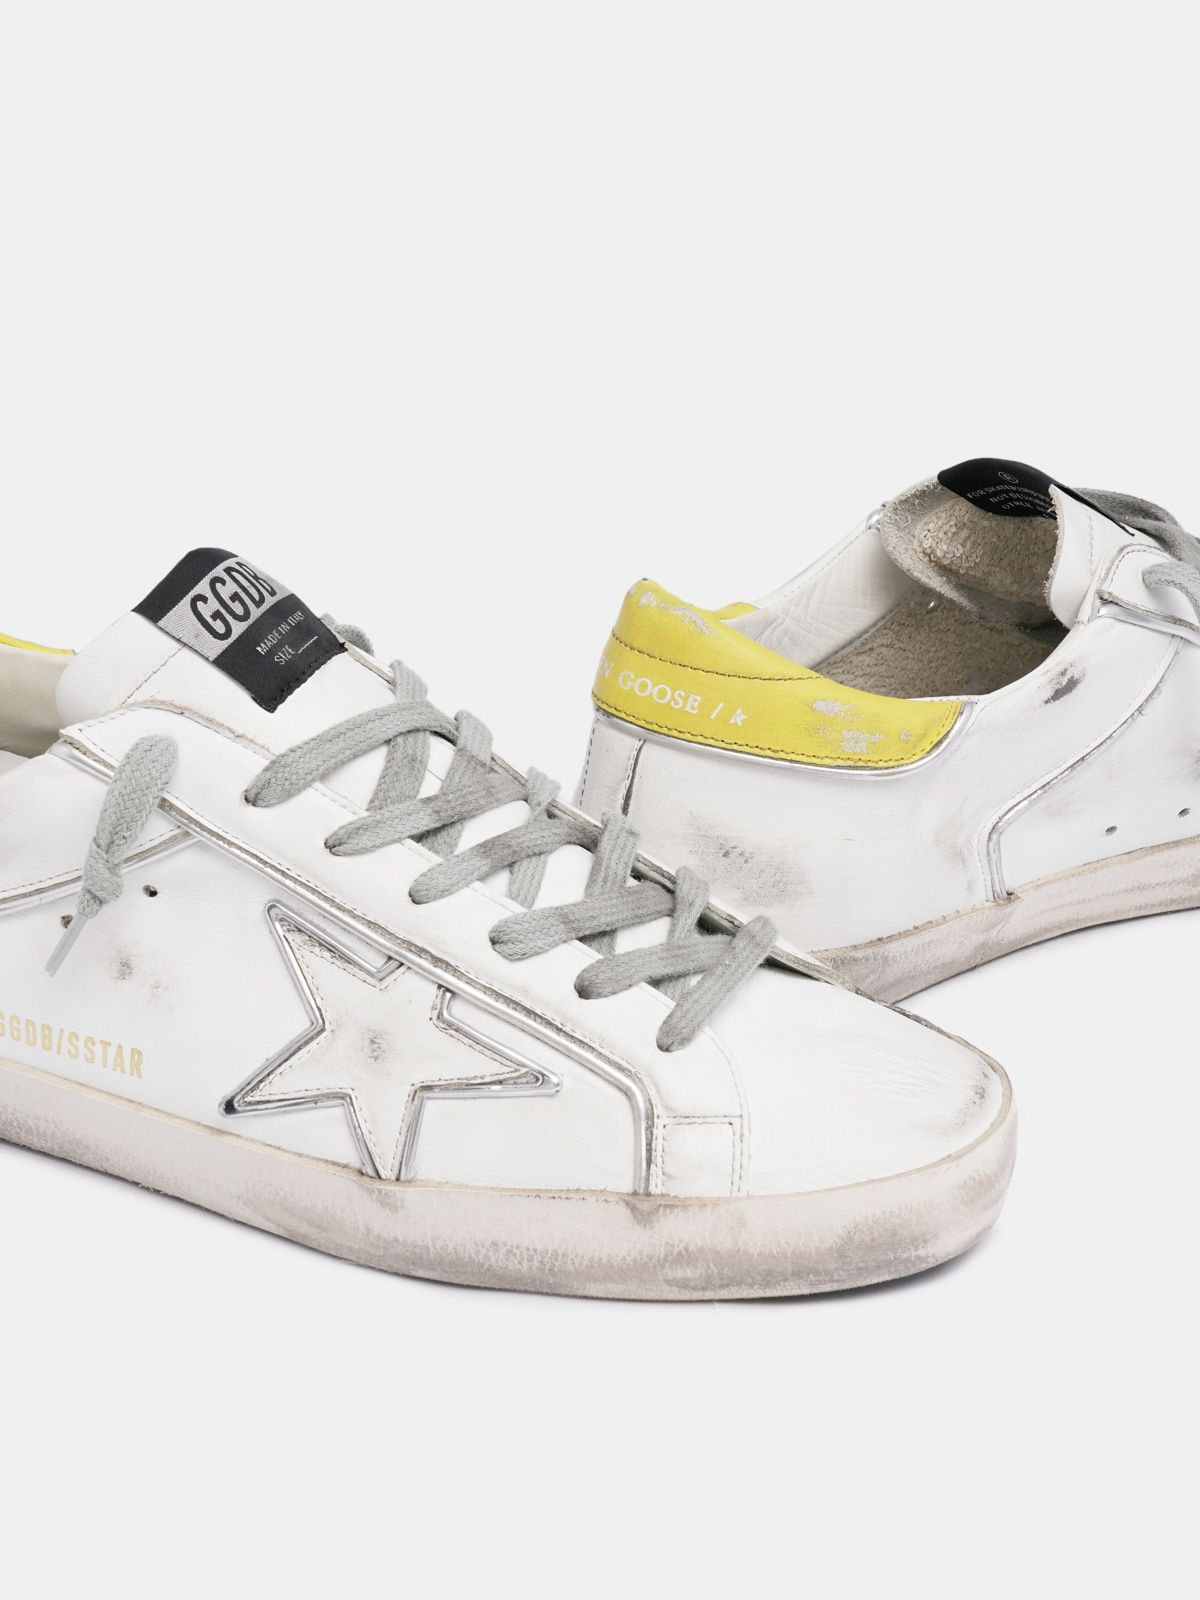 Golden Goose - Super-Star sneakers with silver piping   in